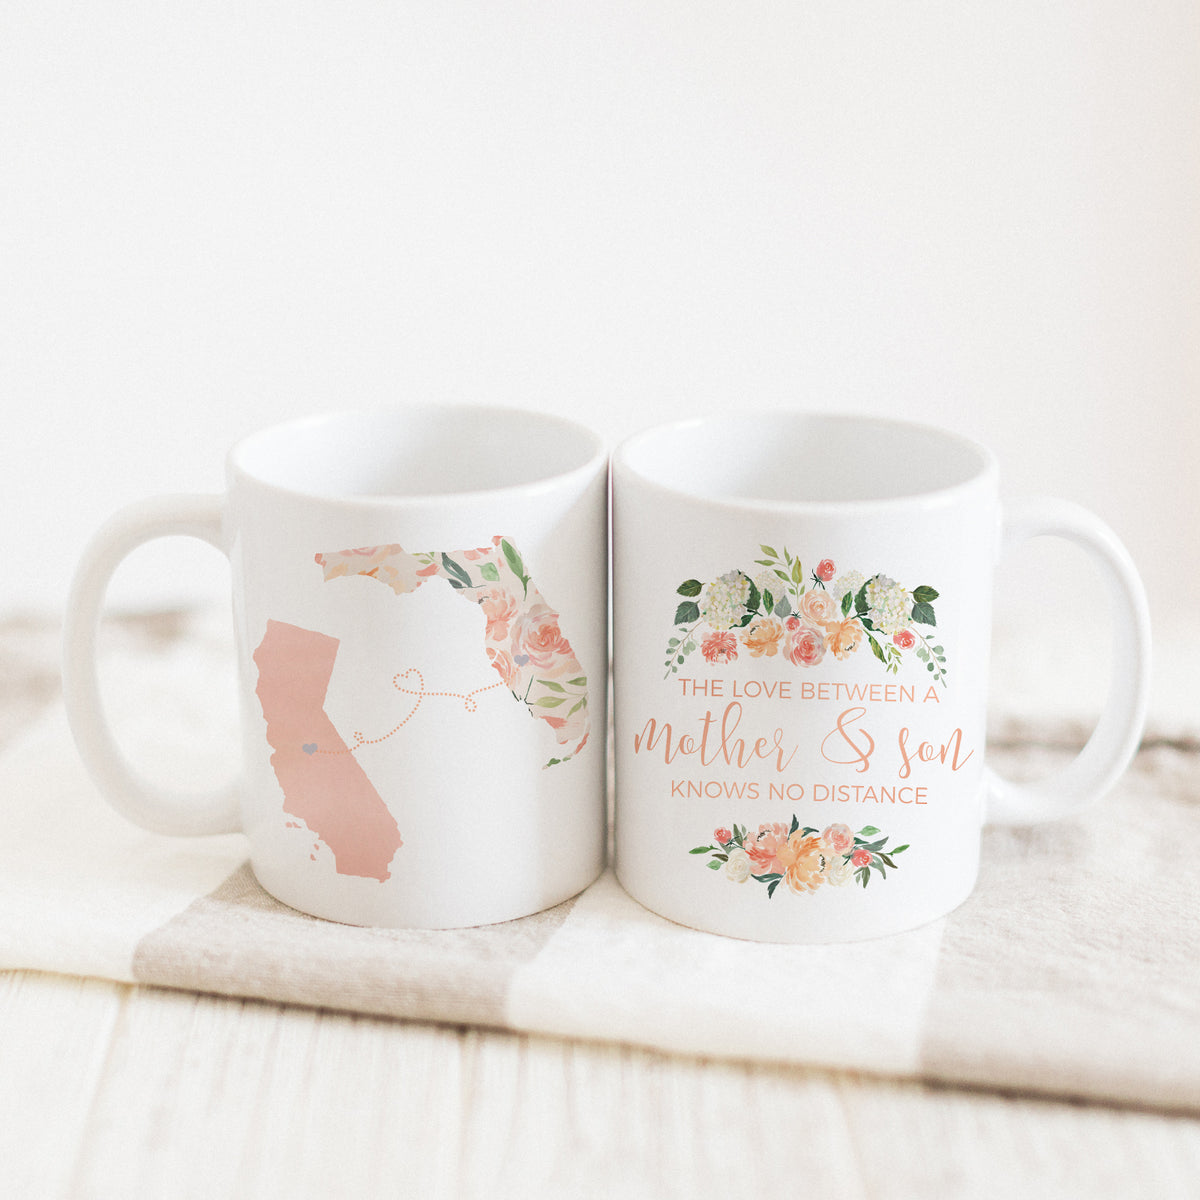 The Love Between A Mother & Son Knows No Distance Mug